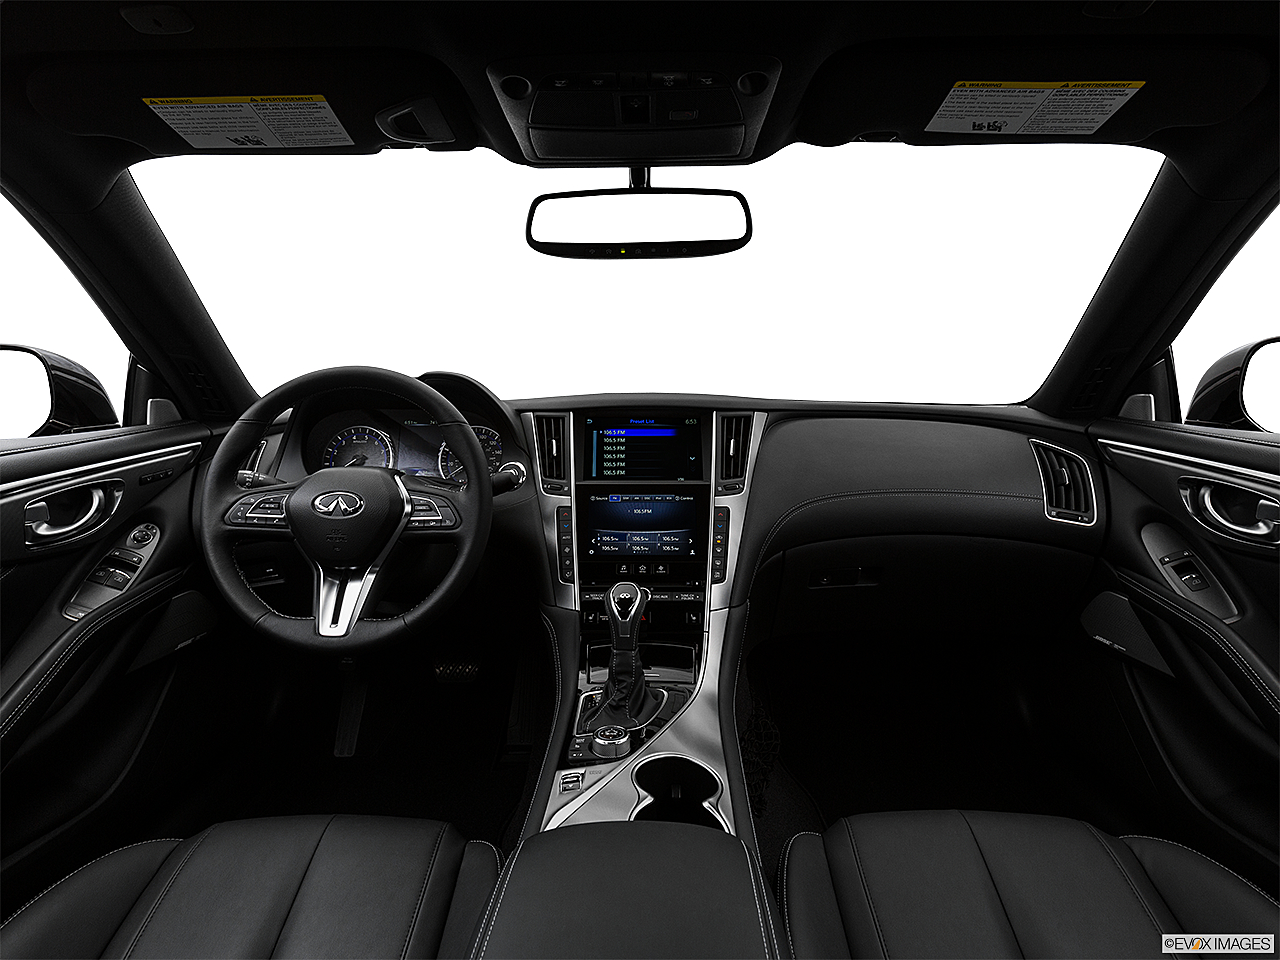 2019 Infiniti Q60 3.0t LUXE, centered wide dash shot